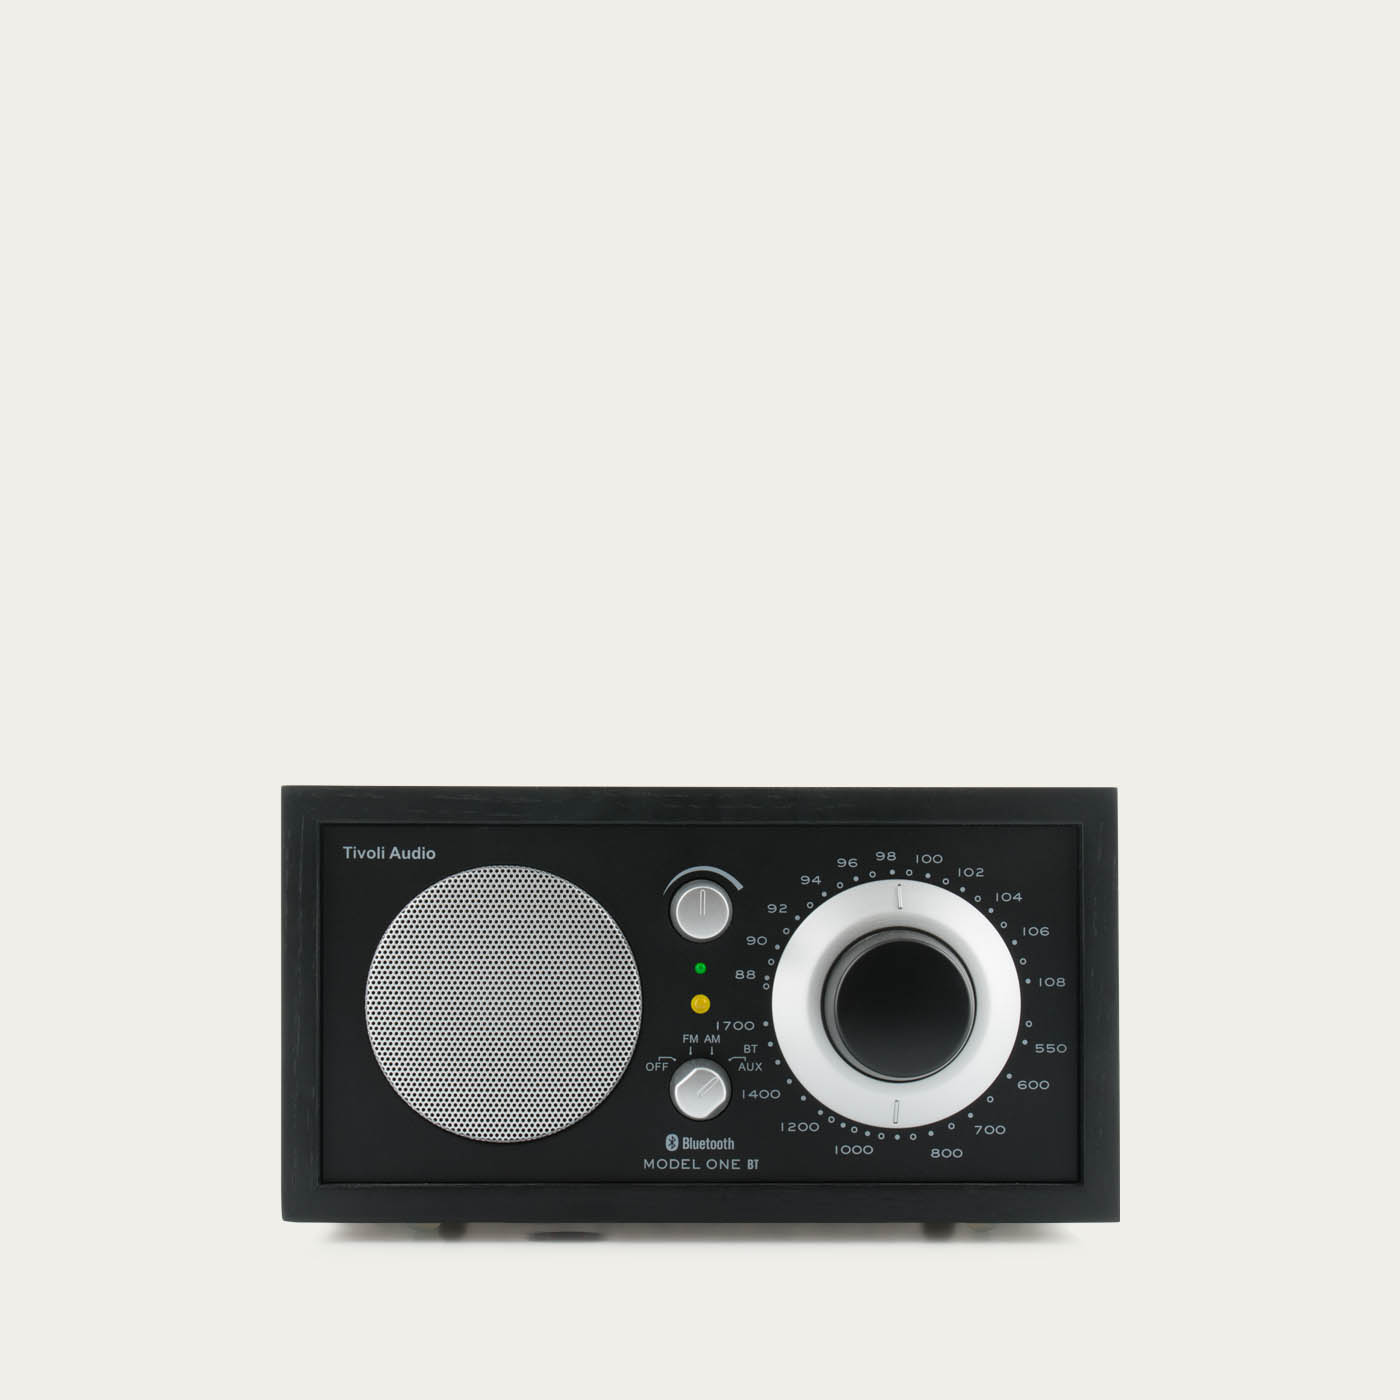 Tivoli Audio Model One BT - Black Ash / Black-Silver | Bombinate